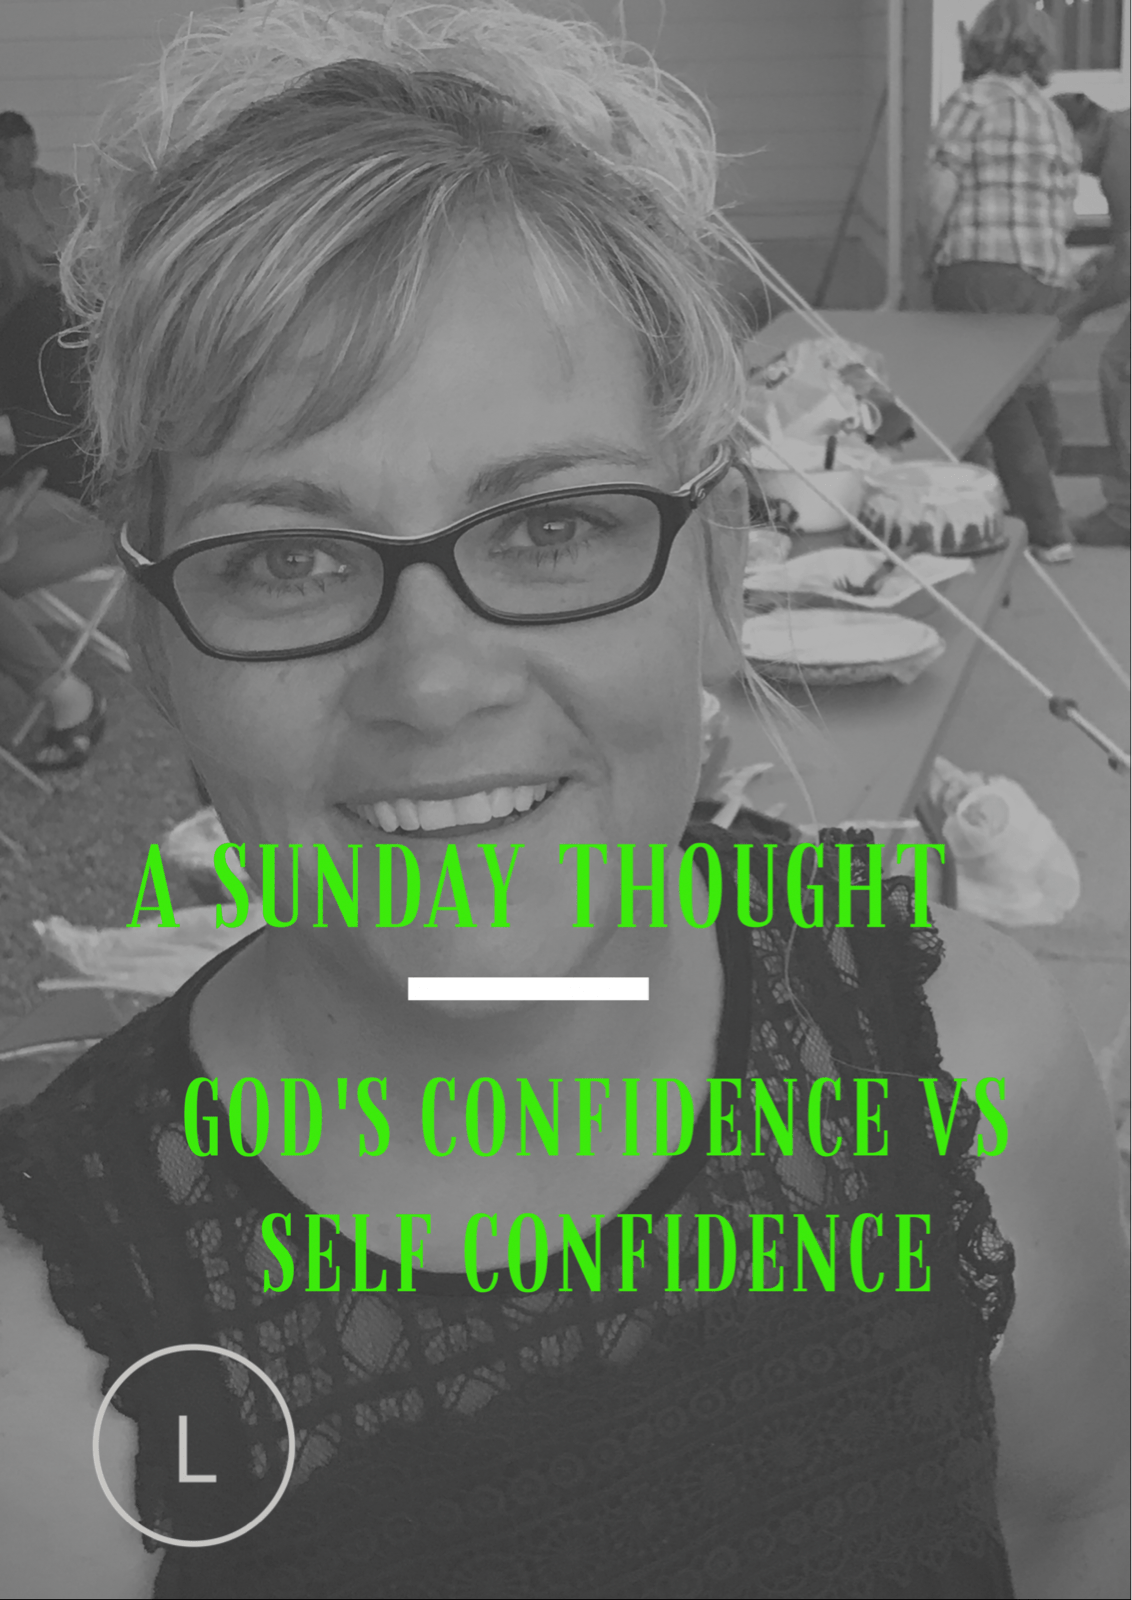 God Gonfidence Vs. Self Confidence